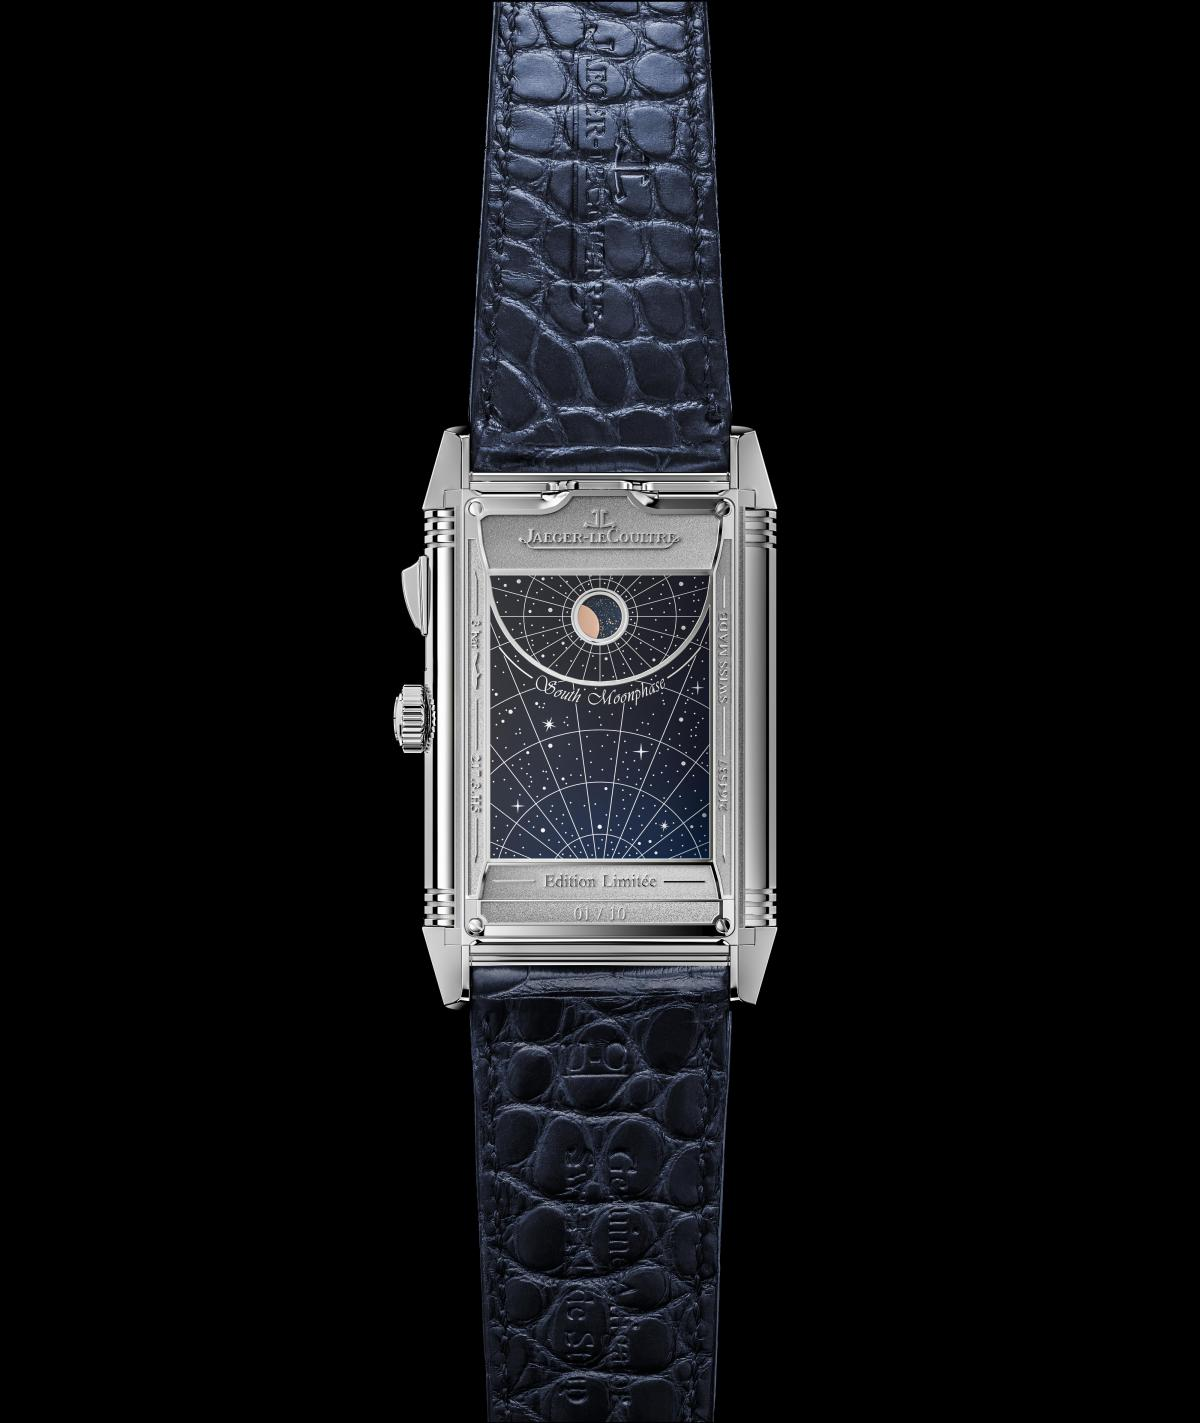 Watches and Wonders 2021 - Jaeger LeCoultre